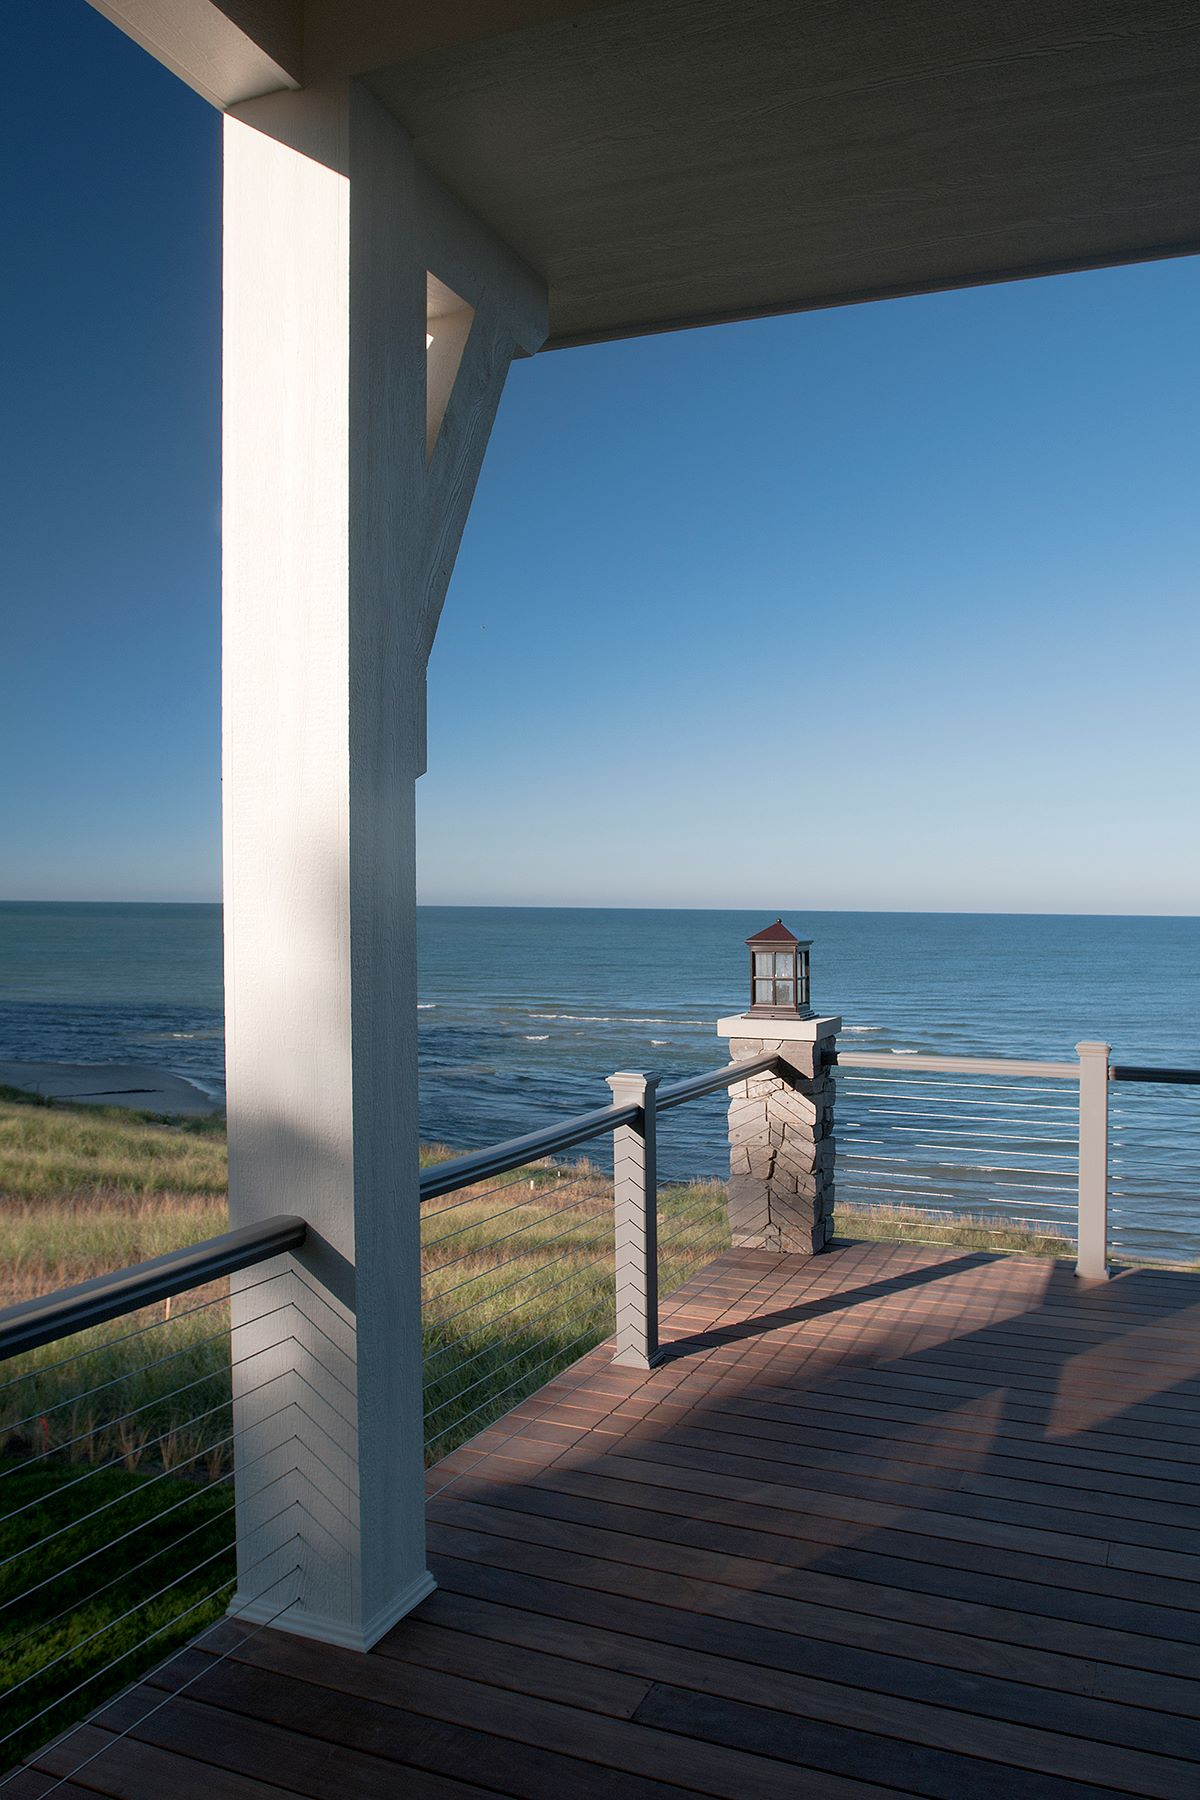 Additional photo for property listing at Immaculate Custom Built Lake Michigan Retreat 3533 Lake Shore Drive Michigan City, Indiana 46360 United States